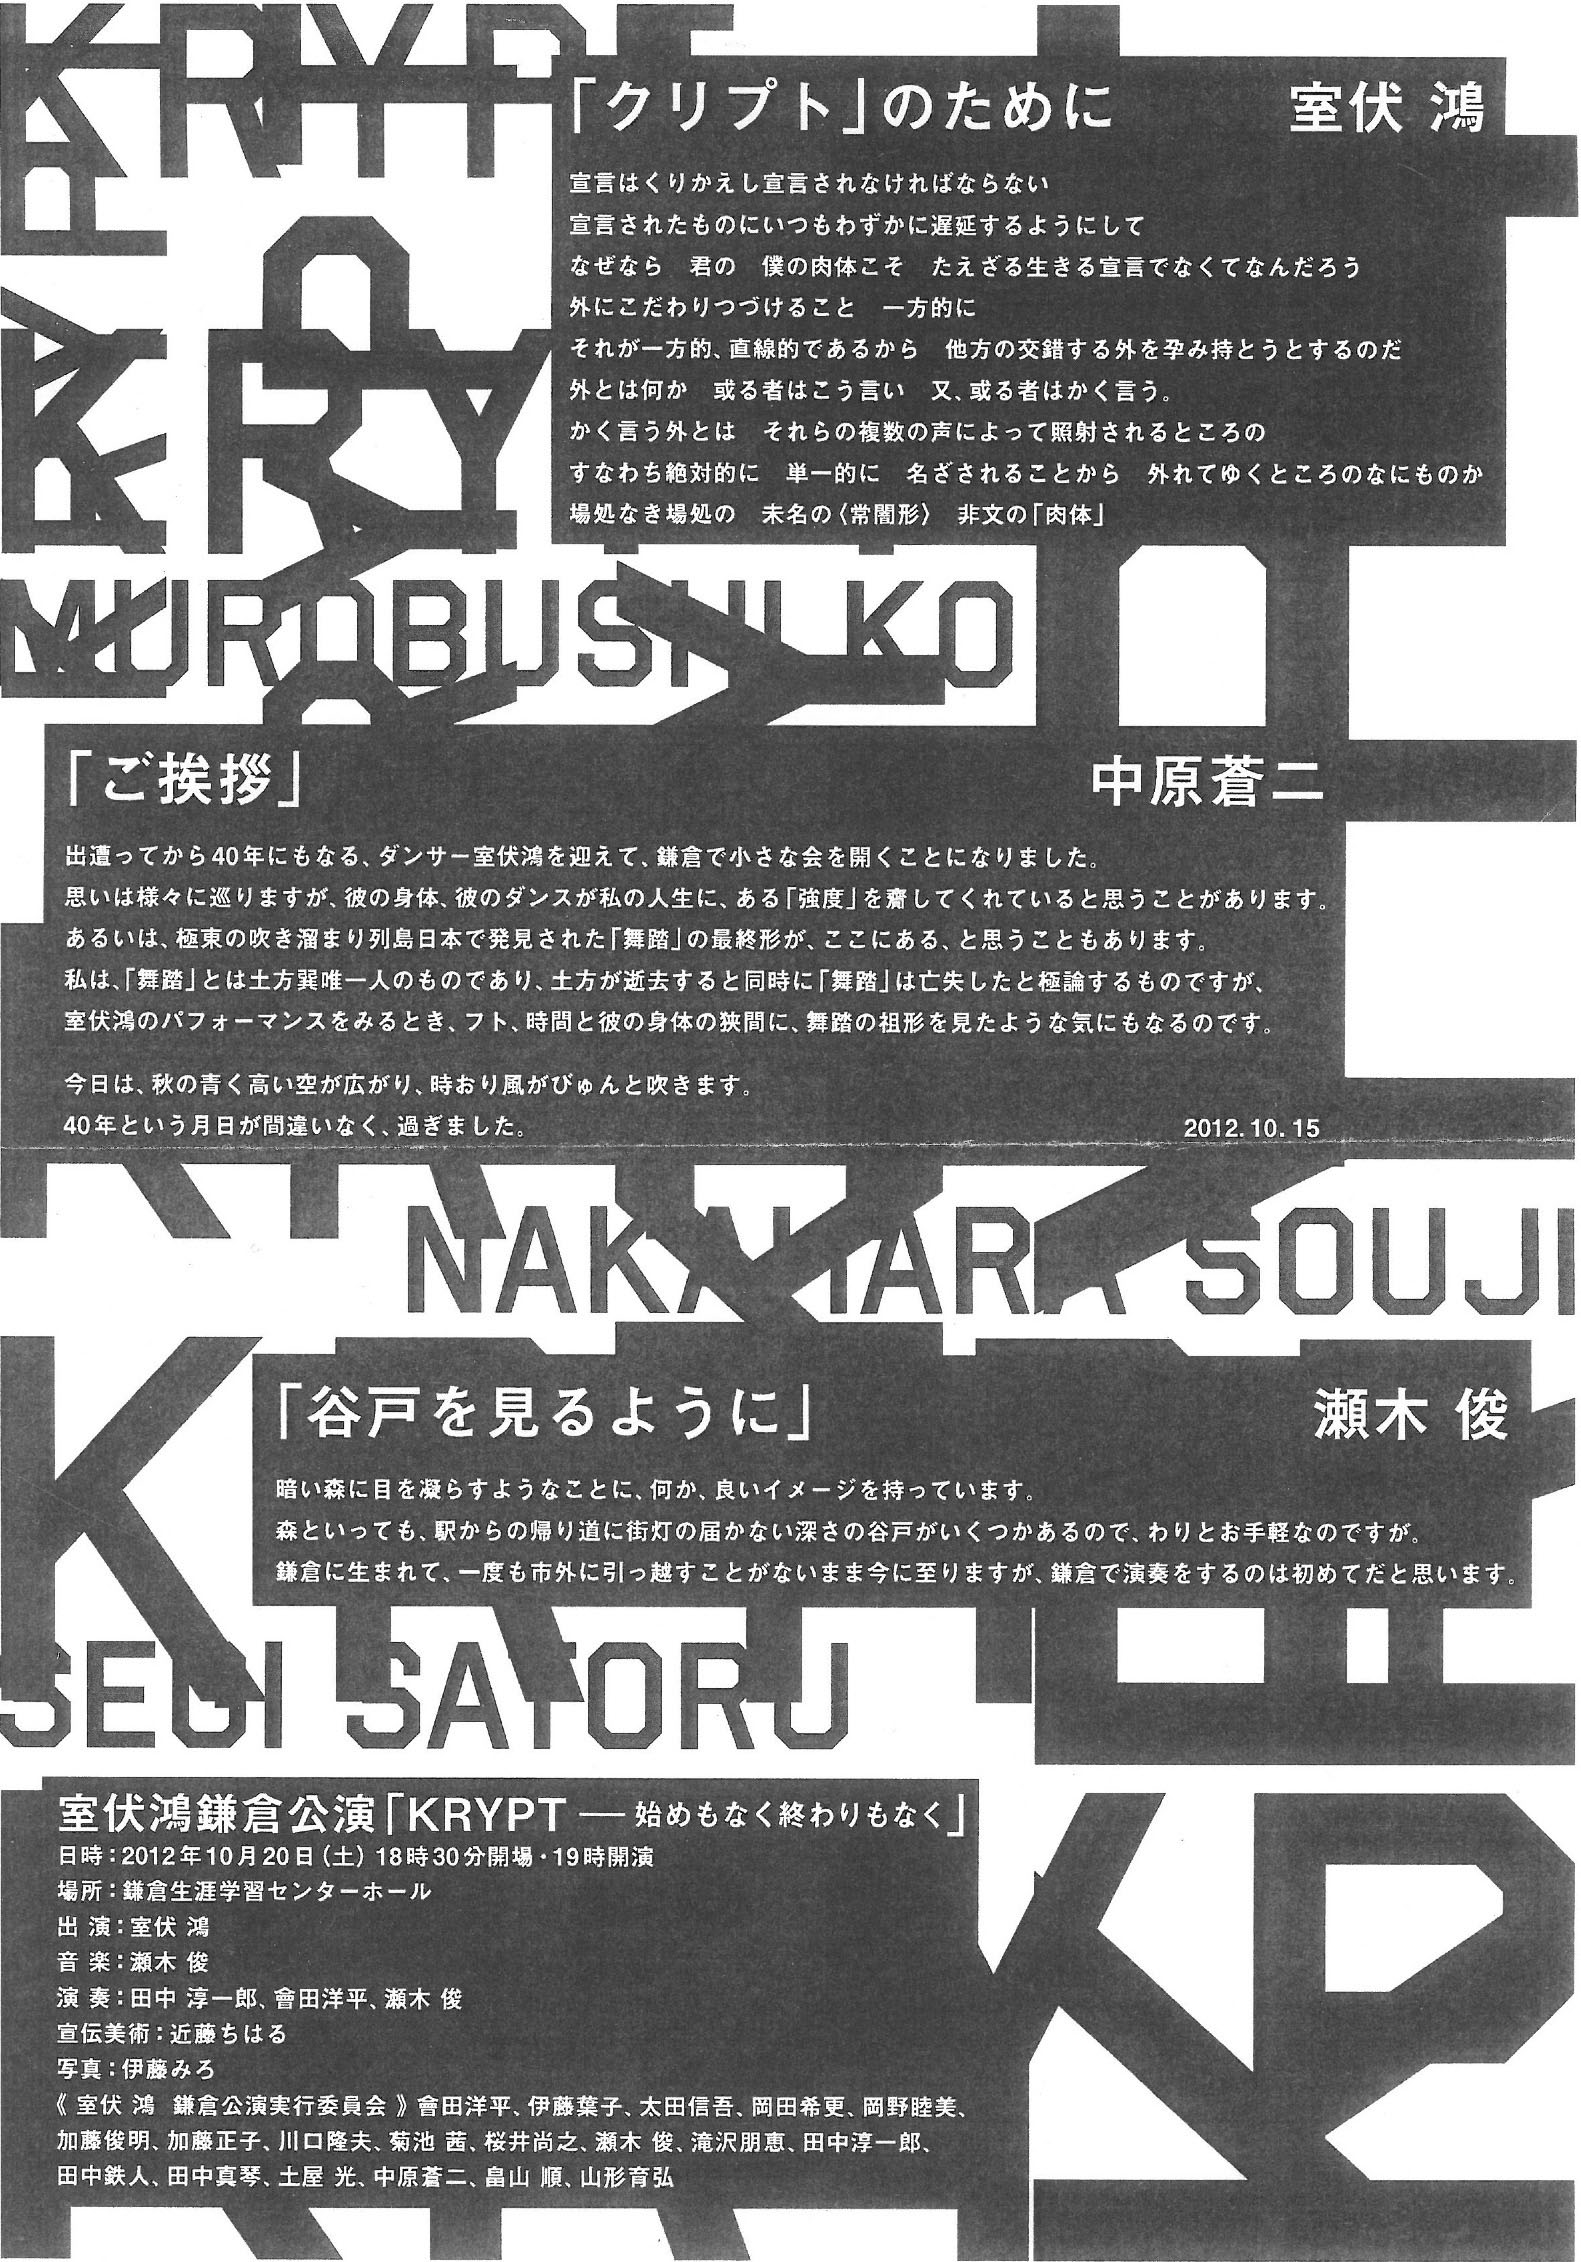 """KRYPT—No Beginning and No Ending""[Flyer]"